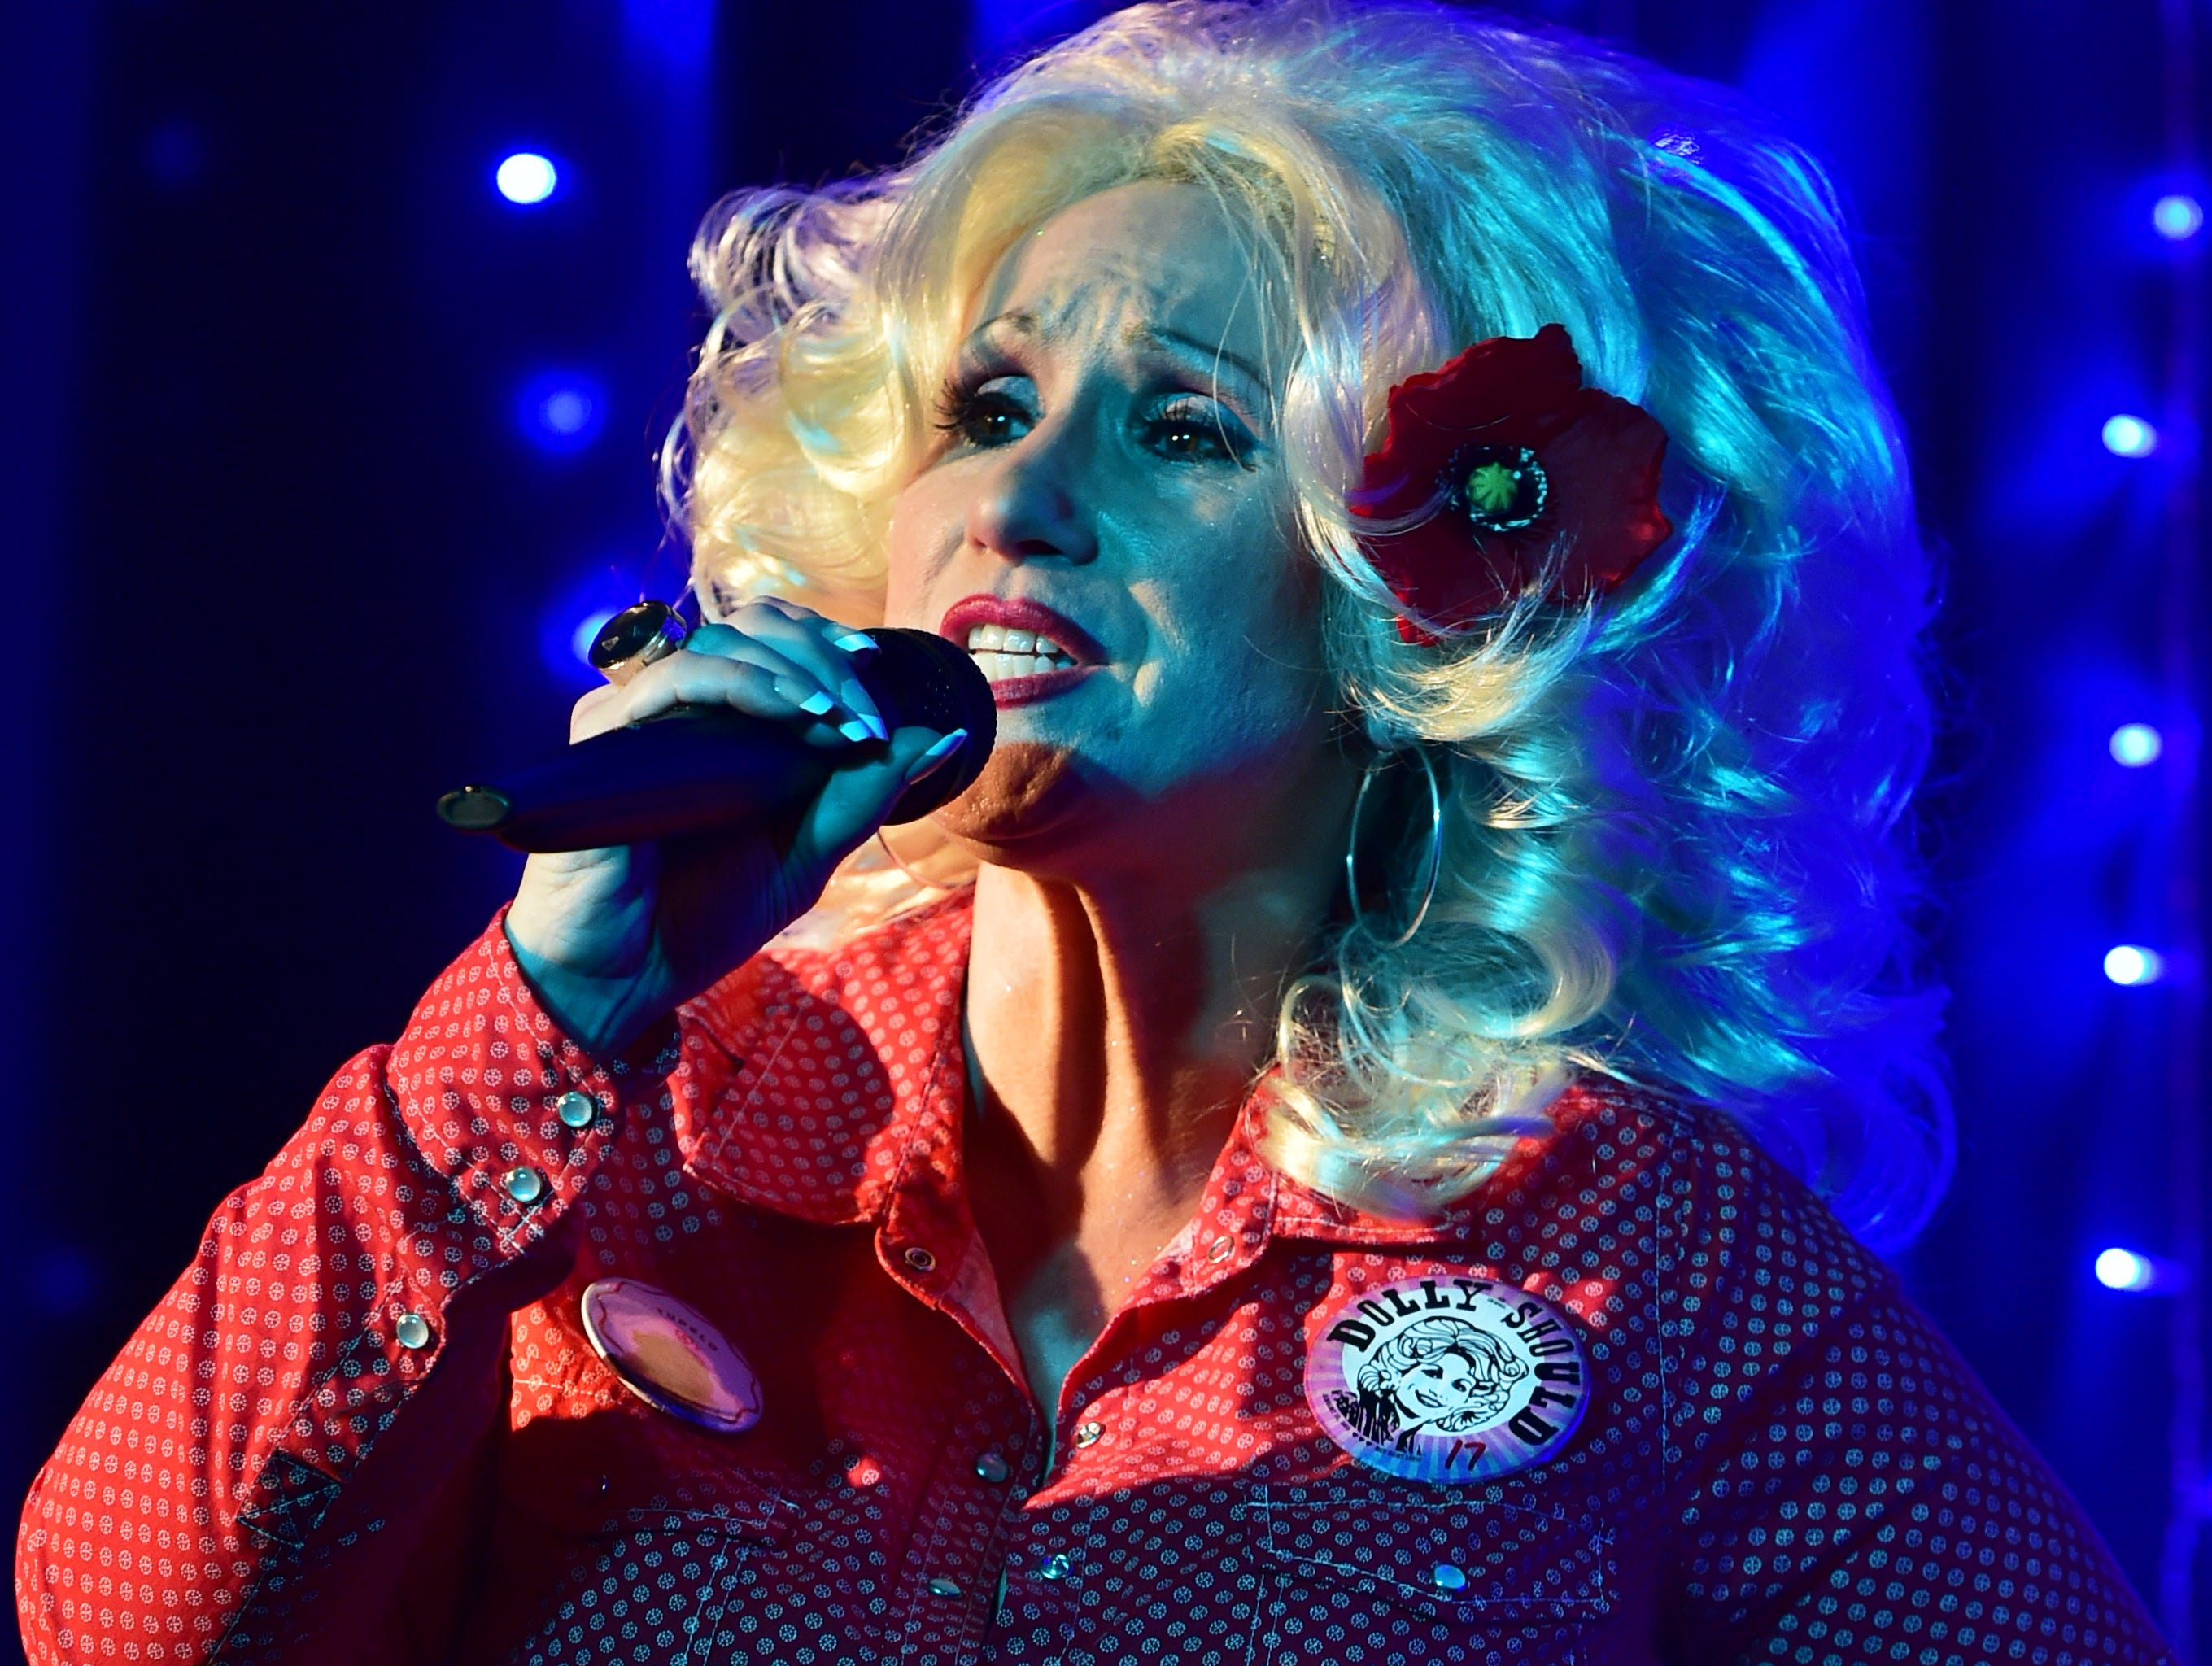 Dolly Parton look-a-like contest winner Cindy Verret sings a karaoke version of a Parton song at 100 Men Hall during the closing celebration of the 4th annual Dolly Should event in Bay St. Louis, Miss. Saturday, Jan. 12, 2019